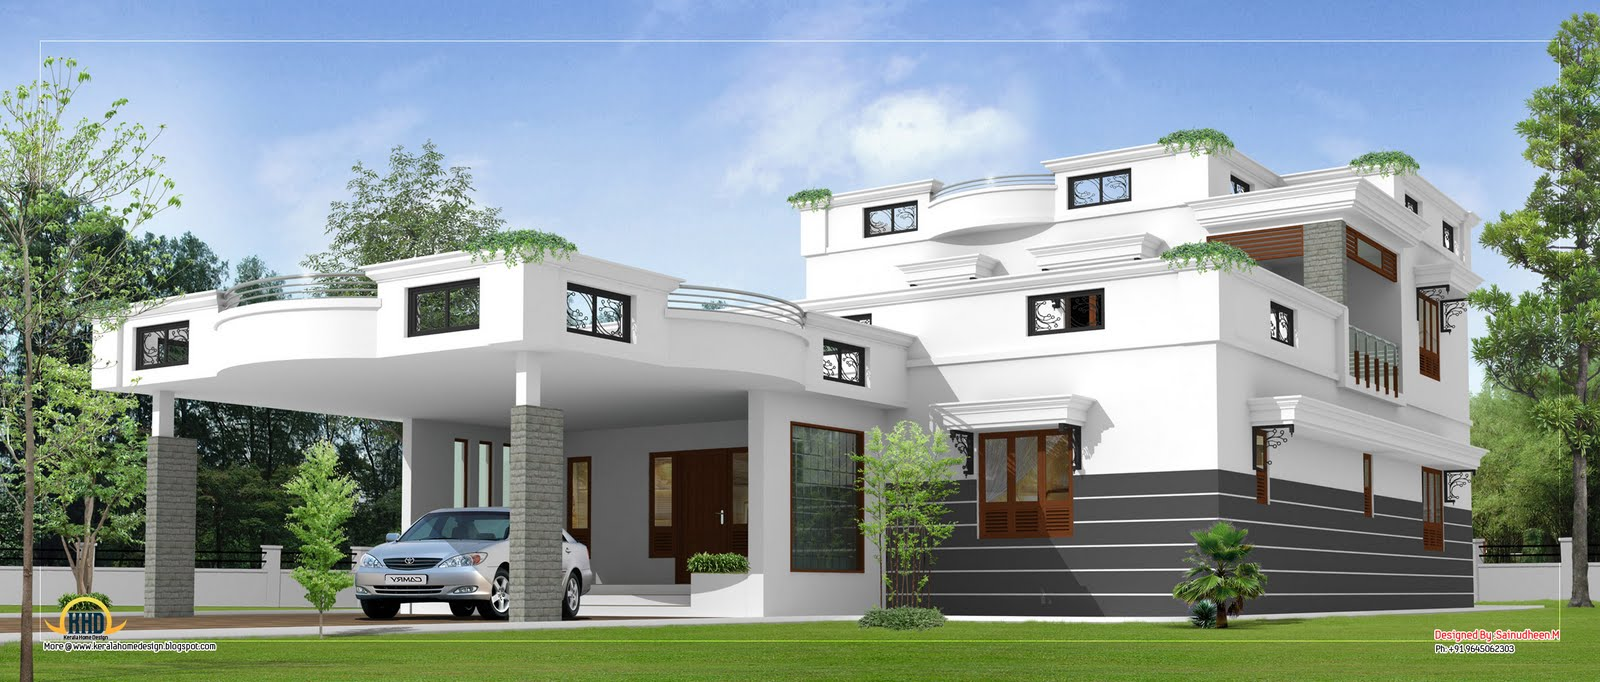 Contemporary home design 3360 sq ft kerala home New model contemporary house